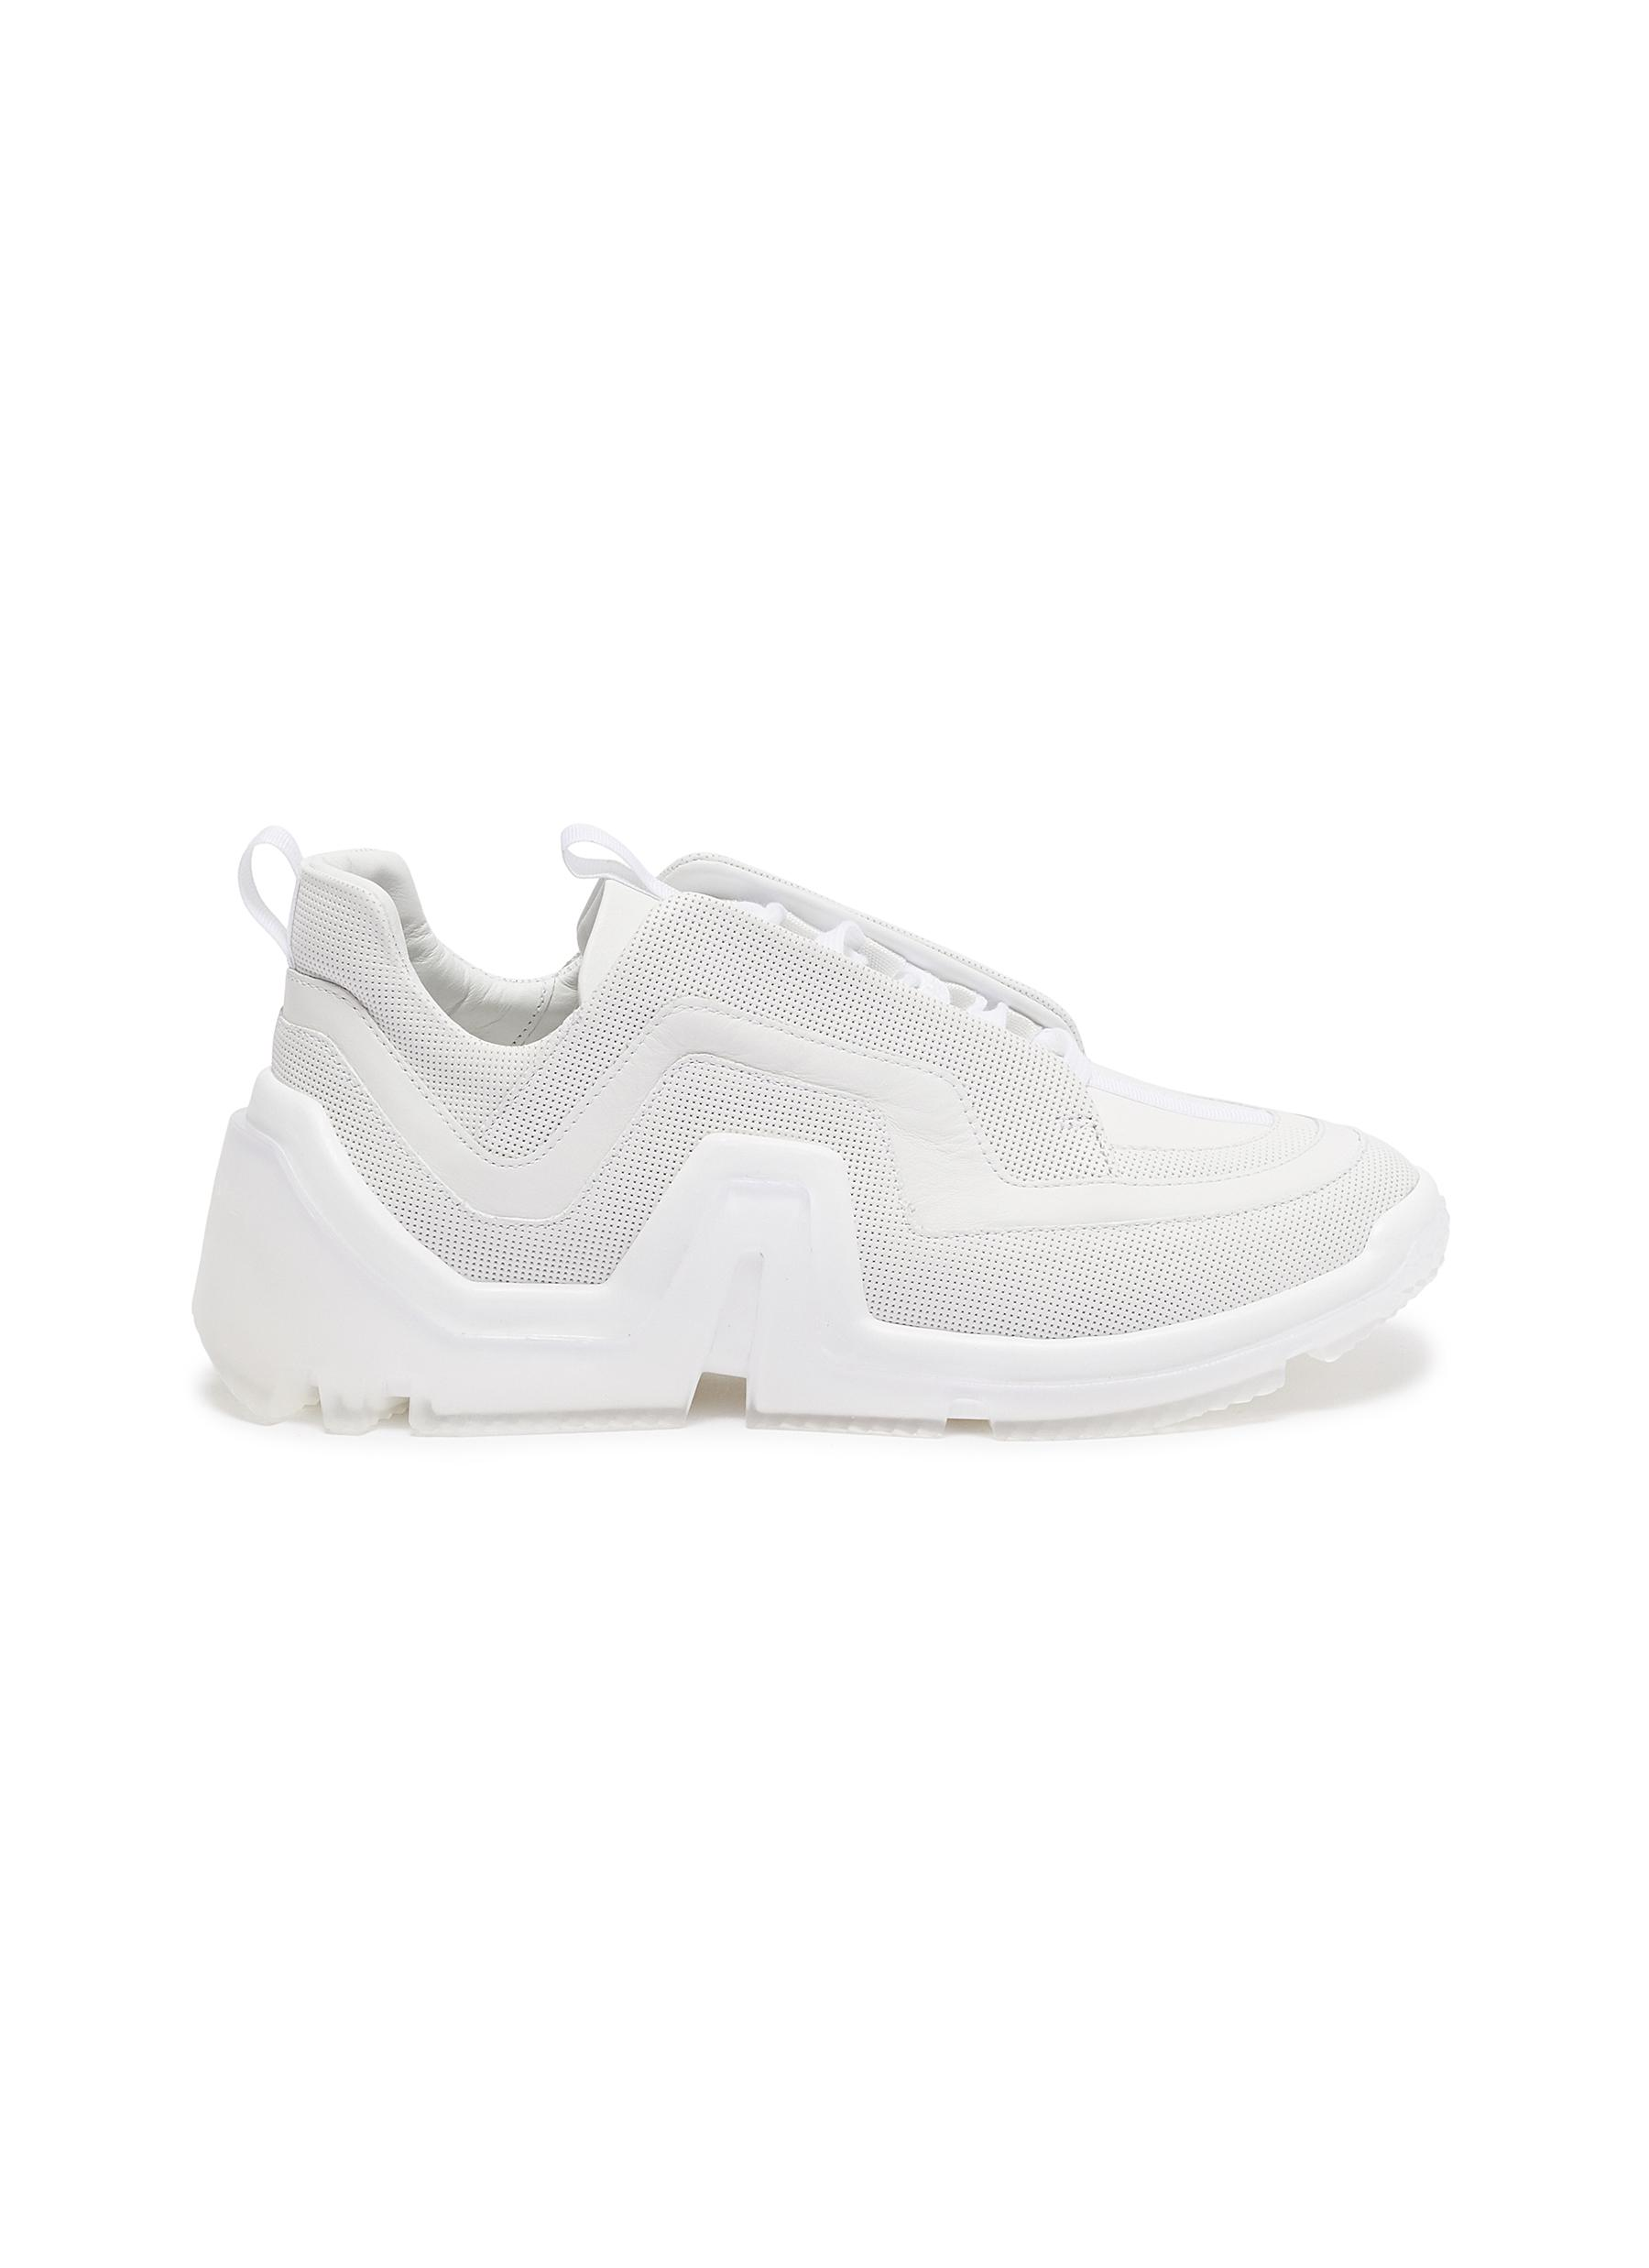 Pierre Hardy Sneakers Vibe perforated leather sneakers